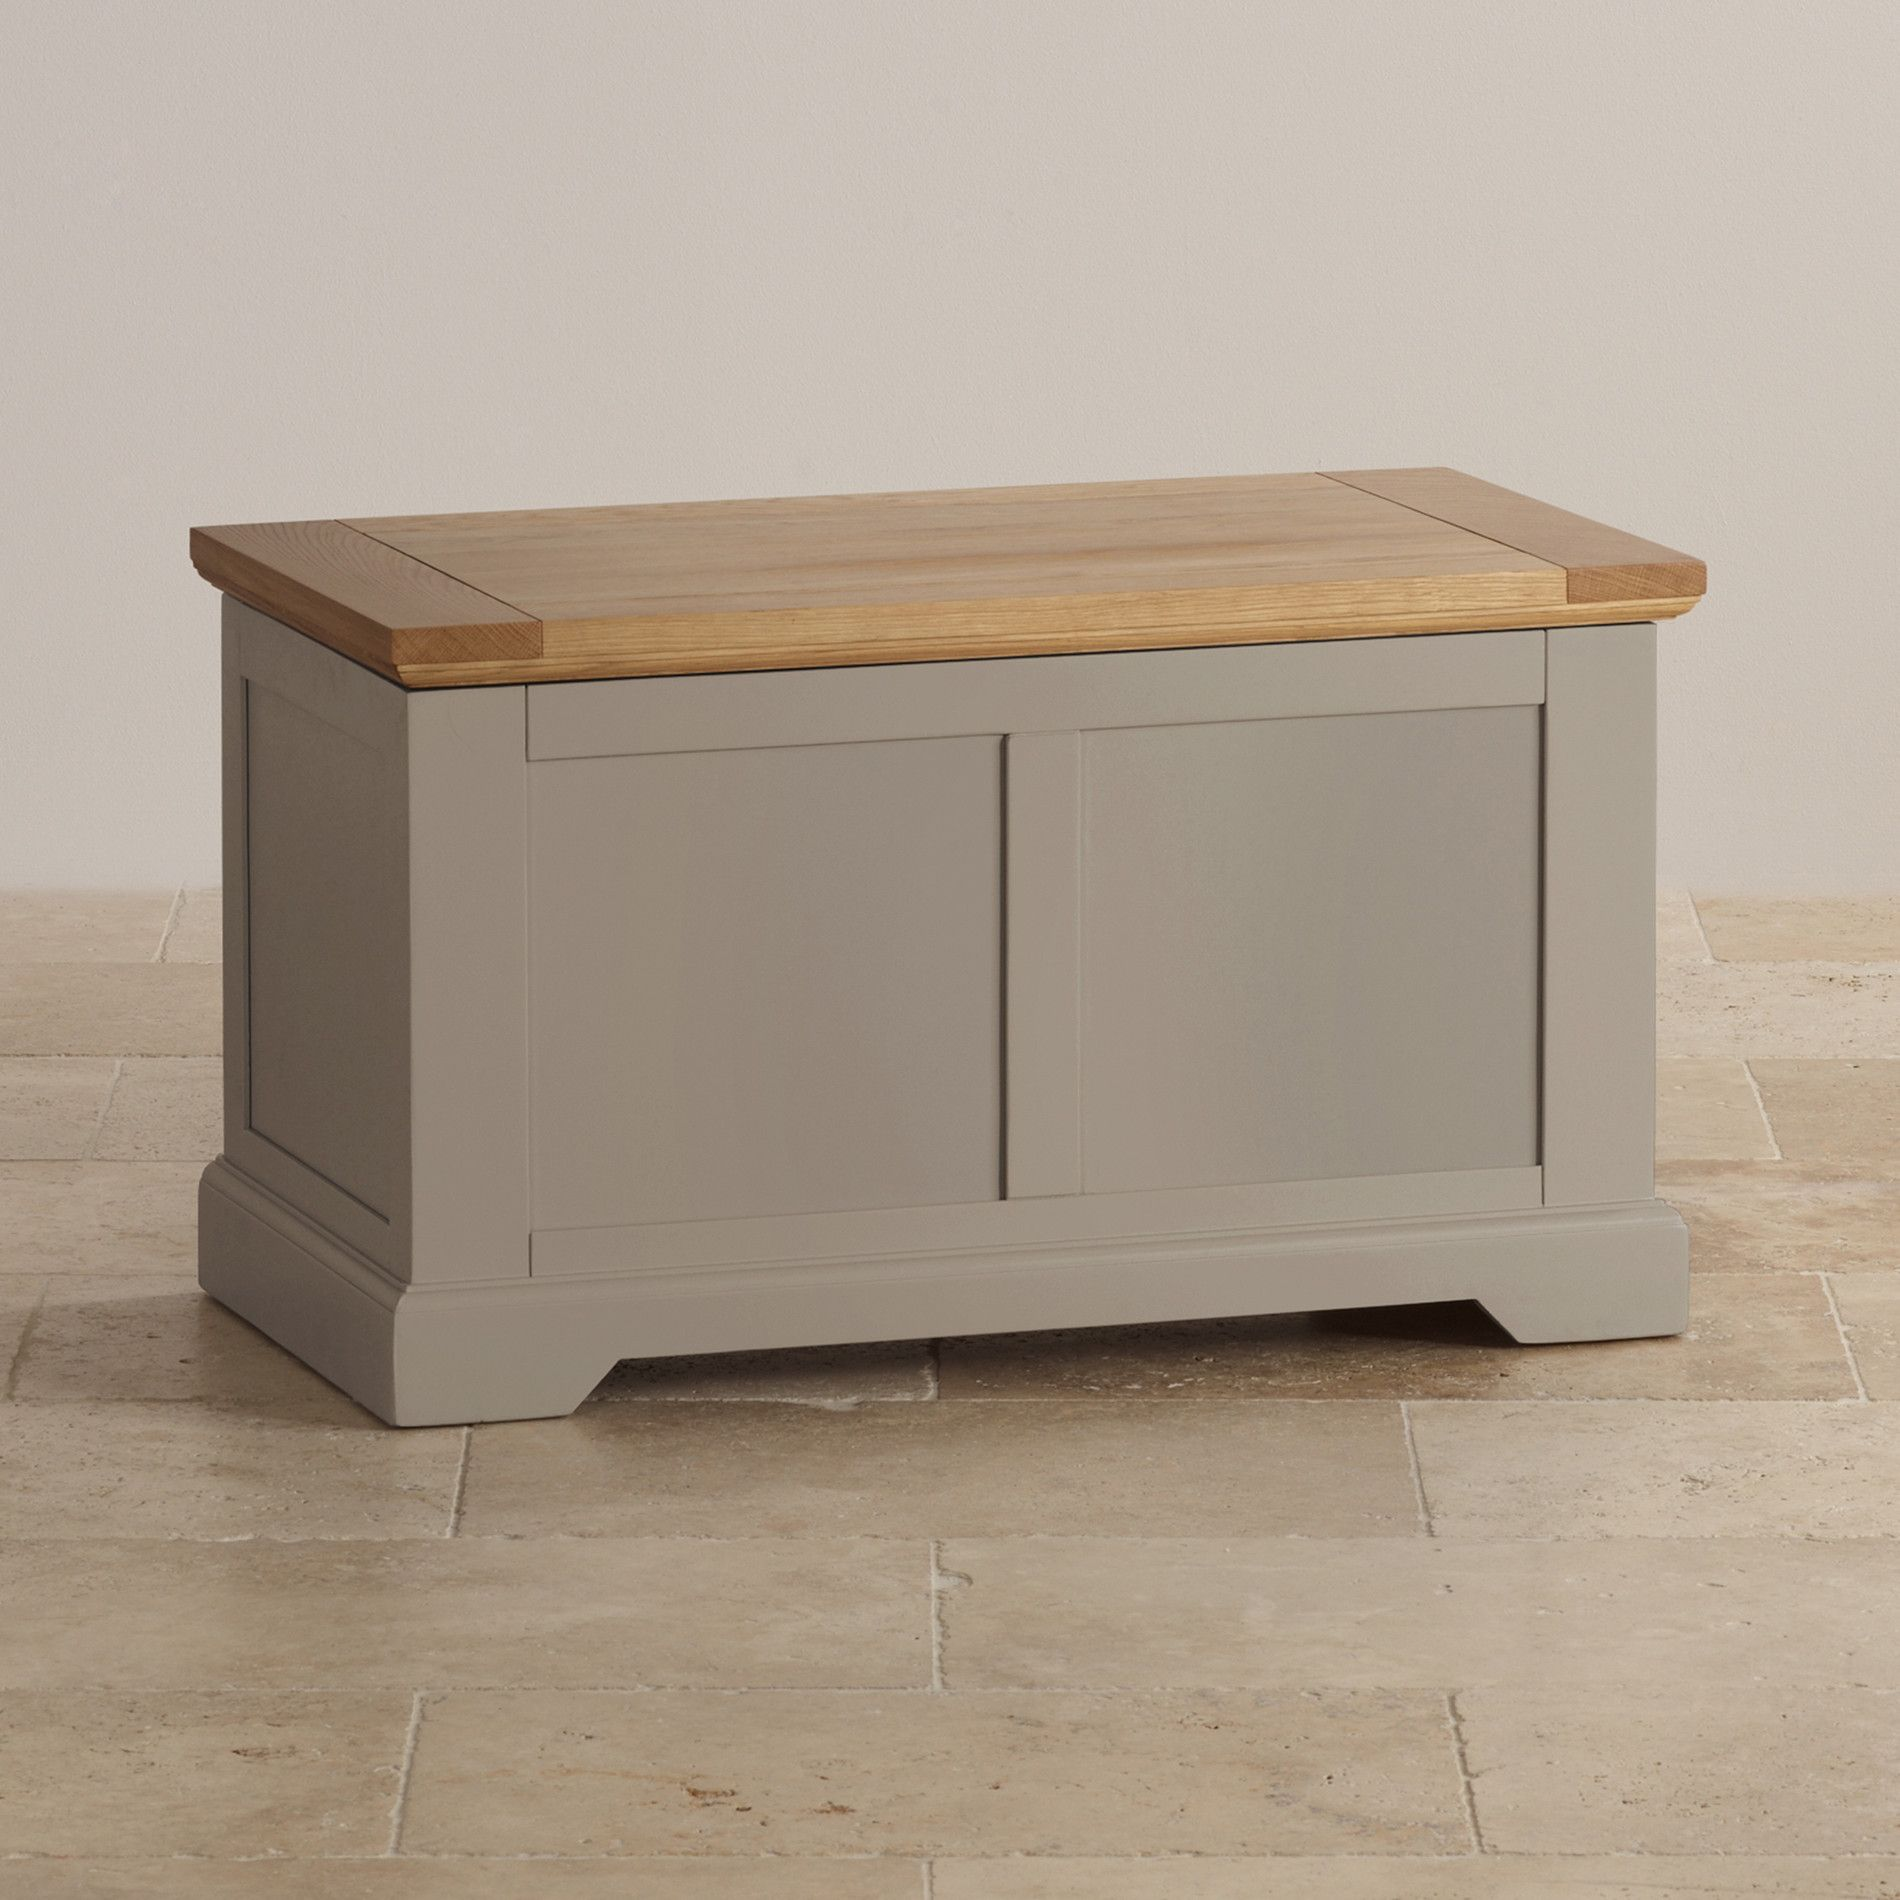 St Ives Natural Oak And Light Grey Painted Blanket Box Grey Painted Furniture Grey Furniture Painted Blanket Box